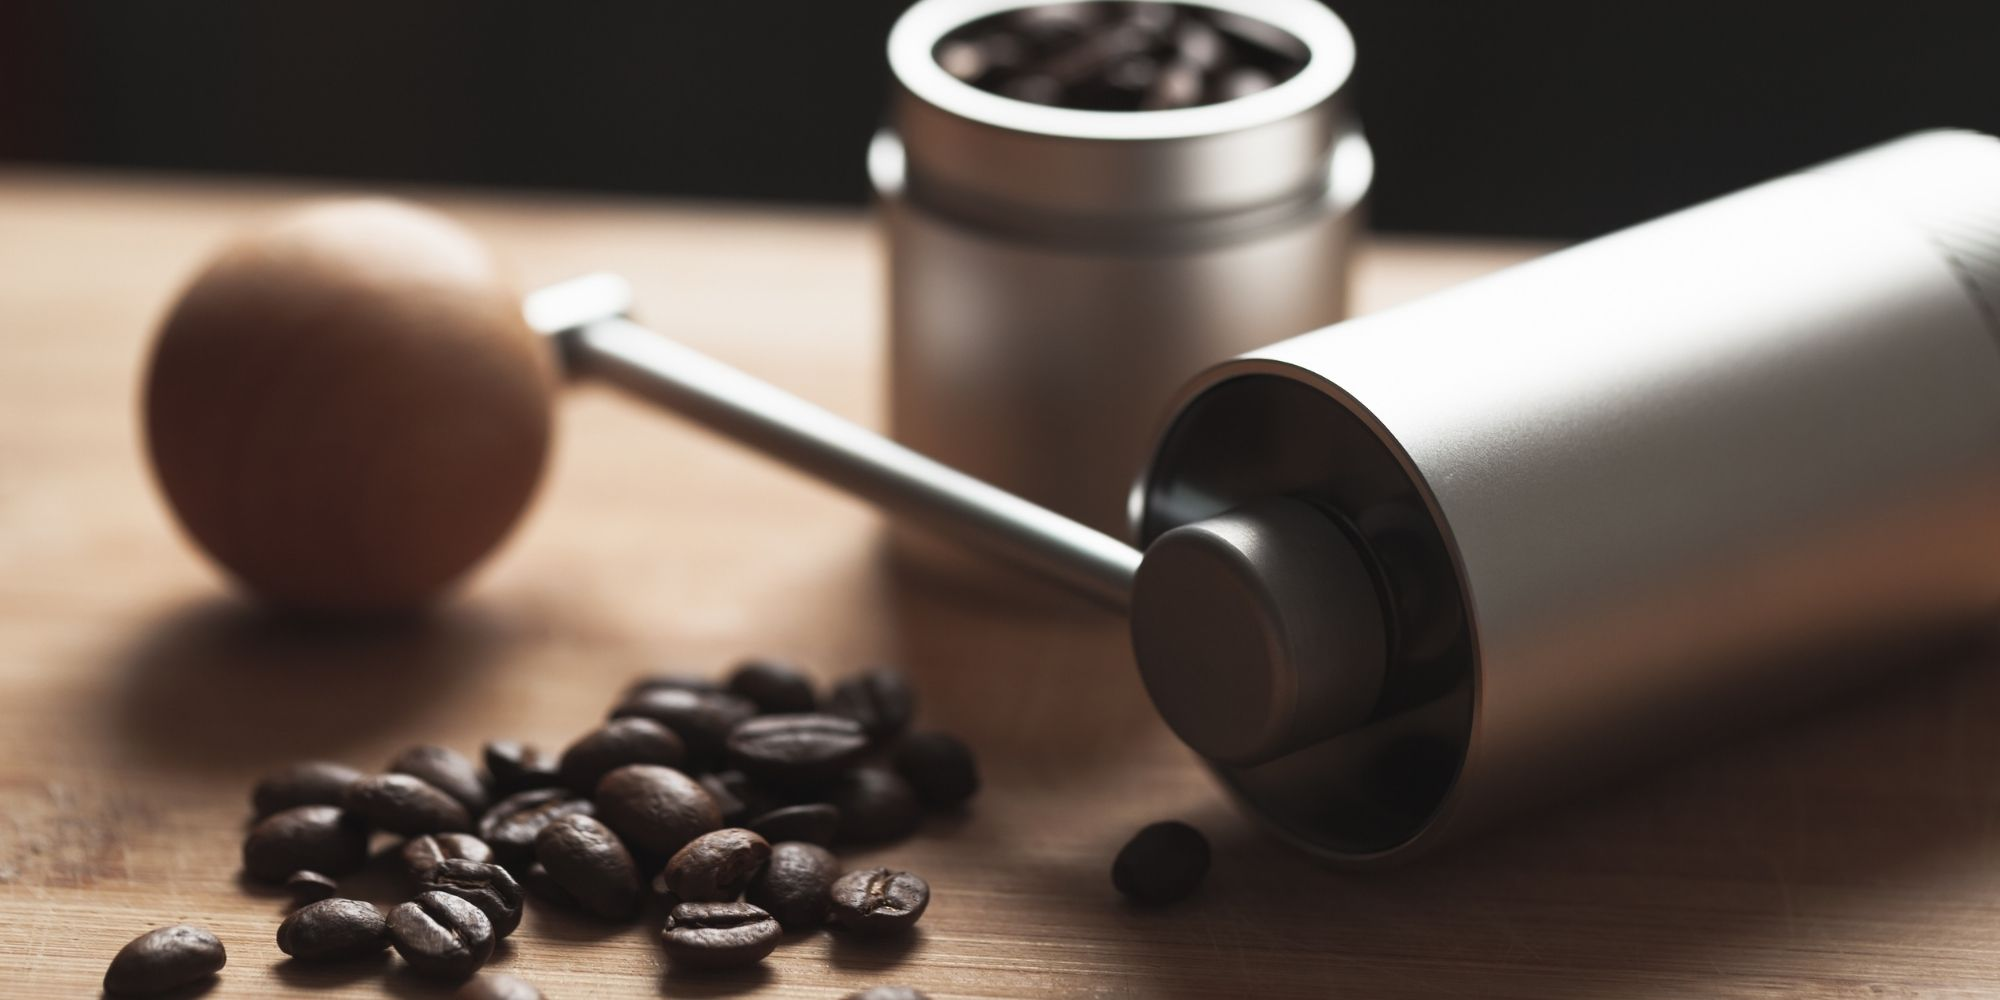 shiny coffee beans, dark roast, dark roasted coffee, specialty coffee